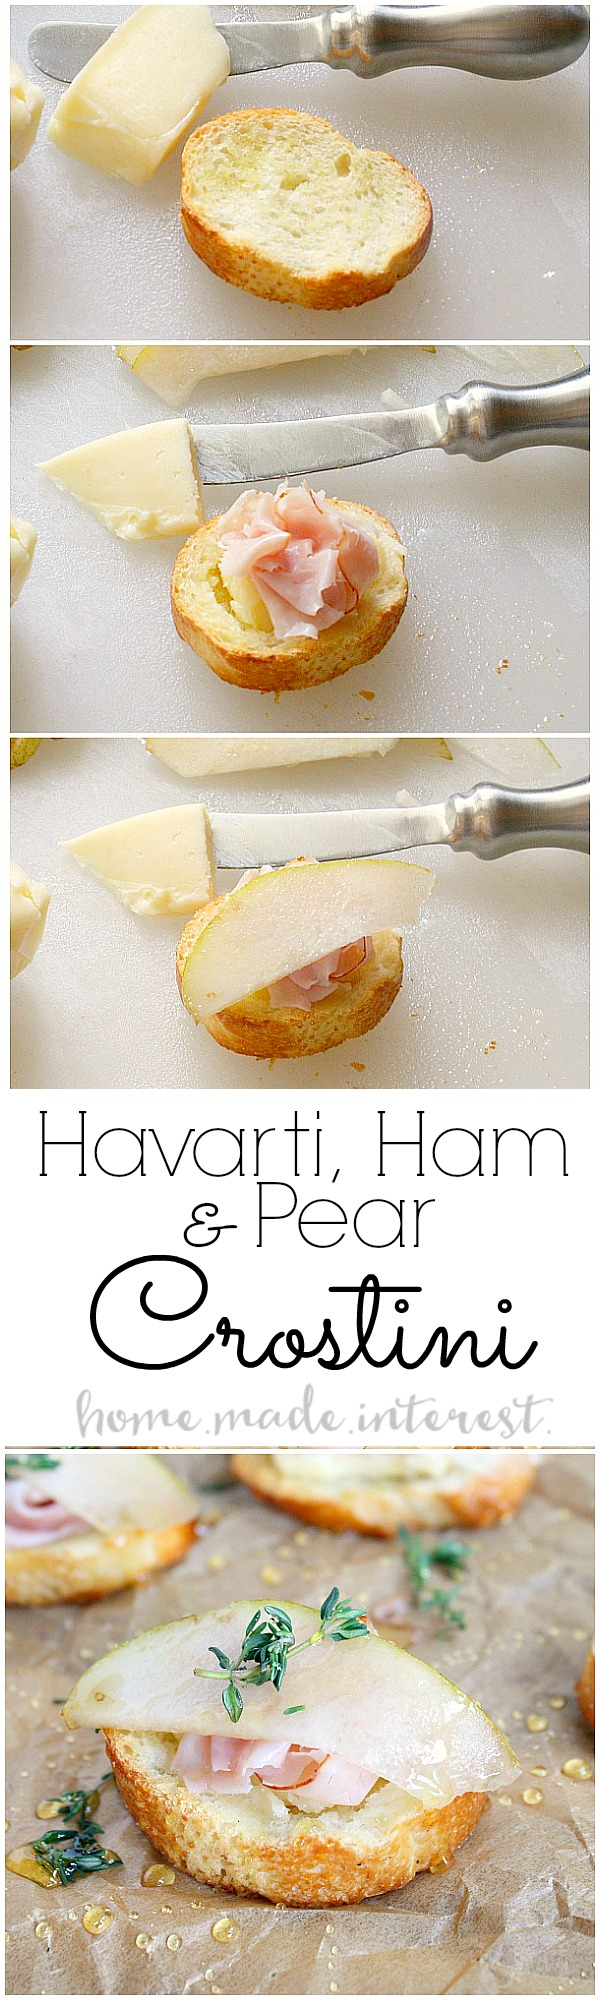 This Simple Flavor Combination Makes A Delicious Appetizer Recipe Havarti Cheese Ham And